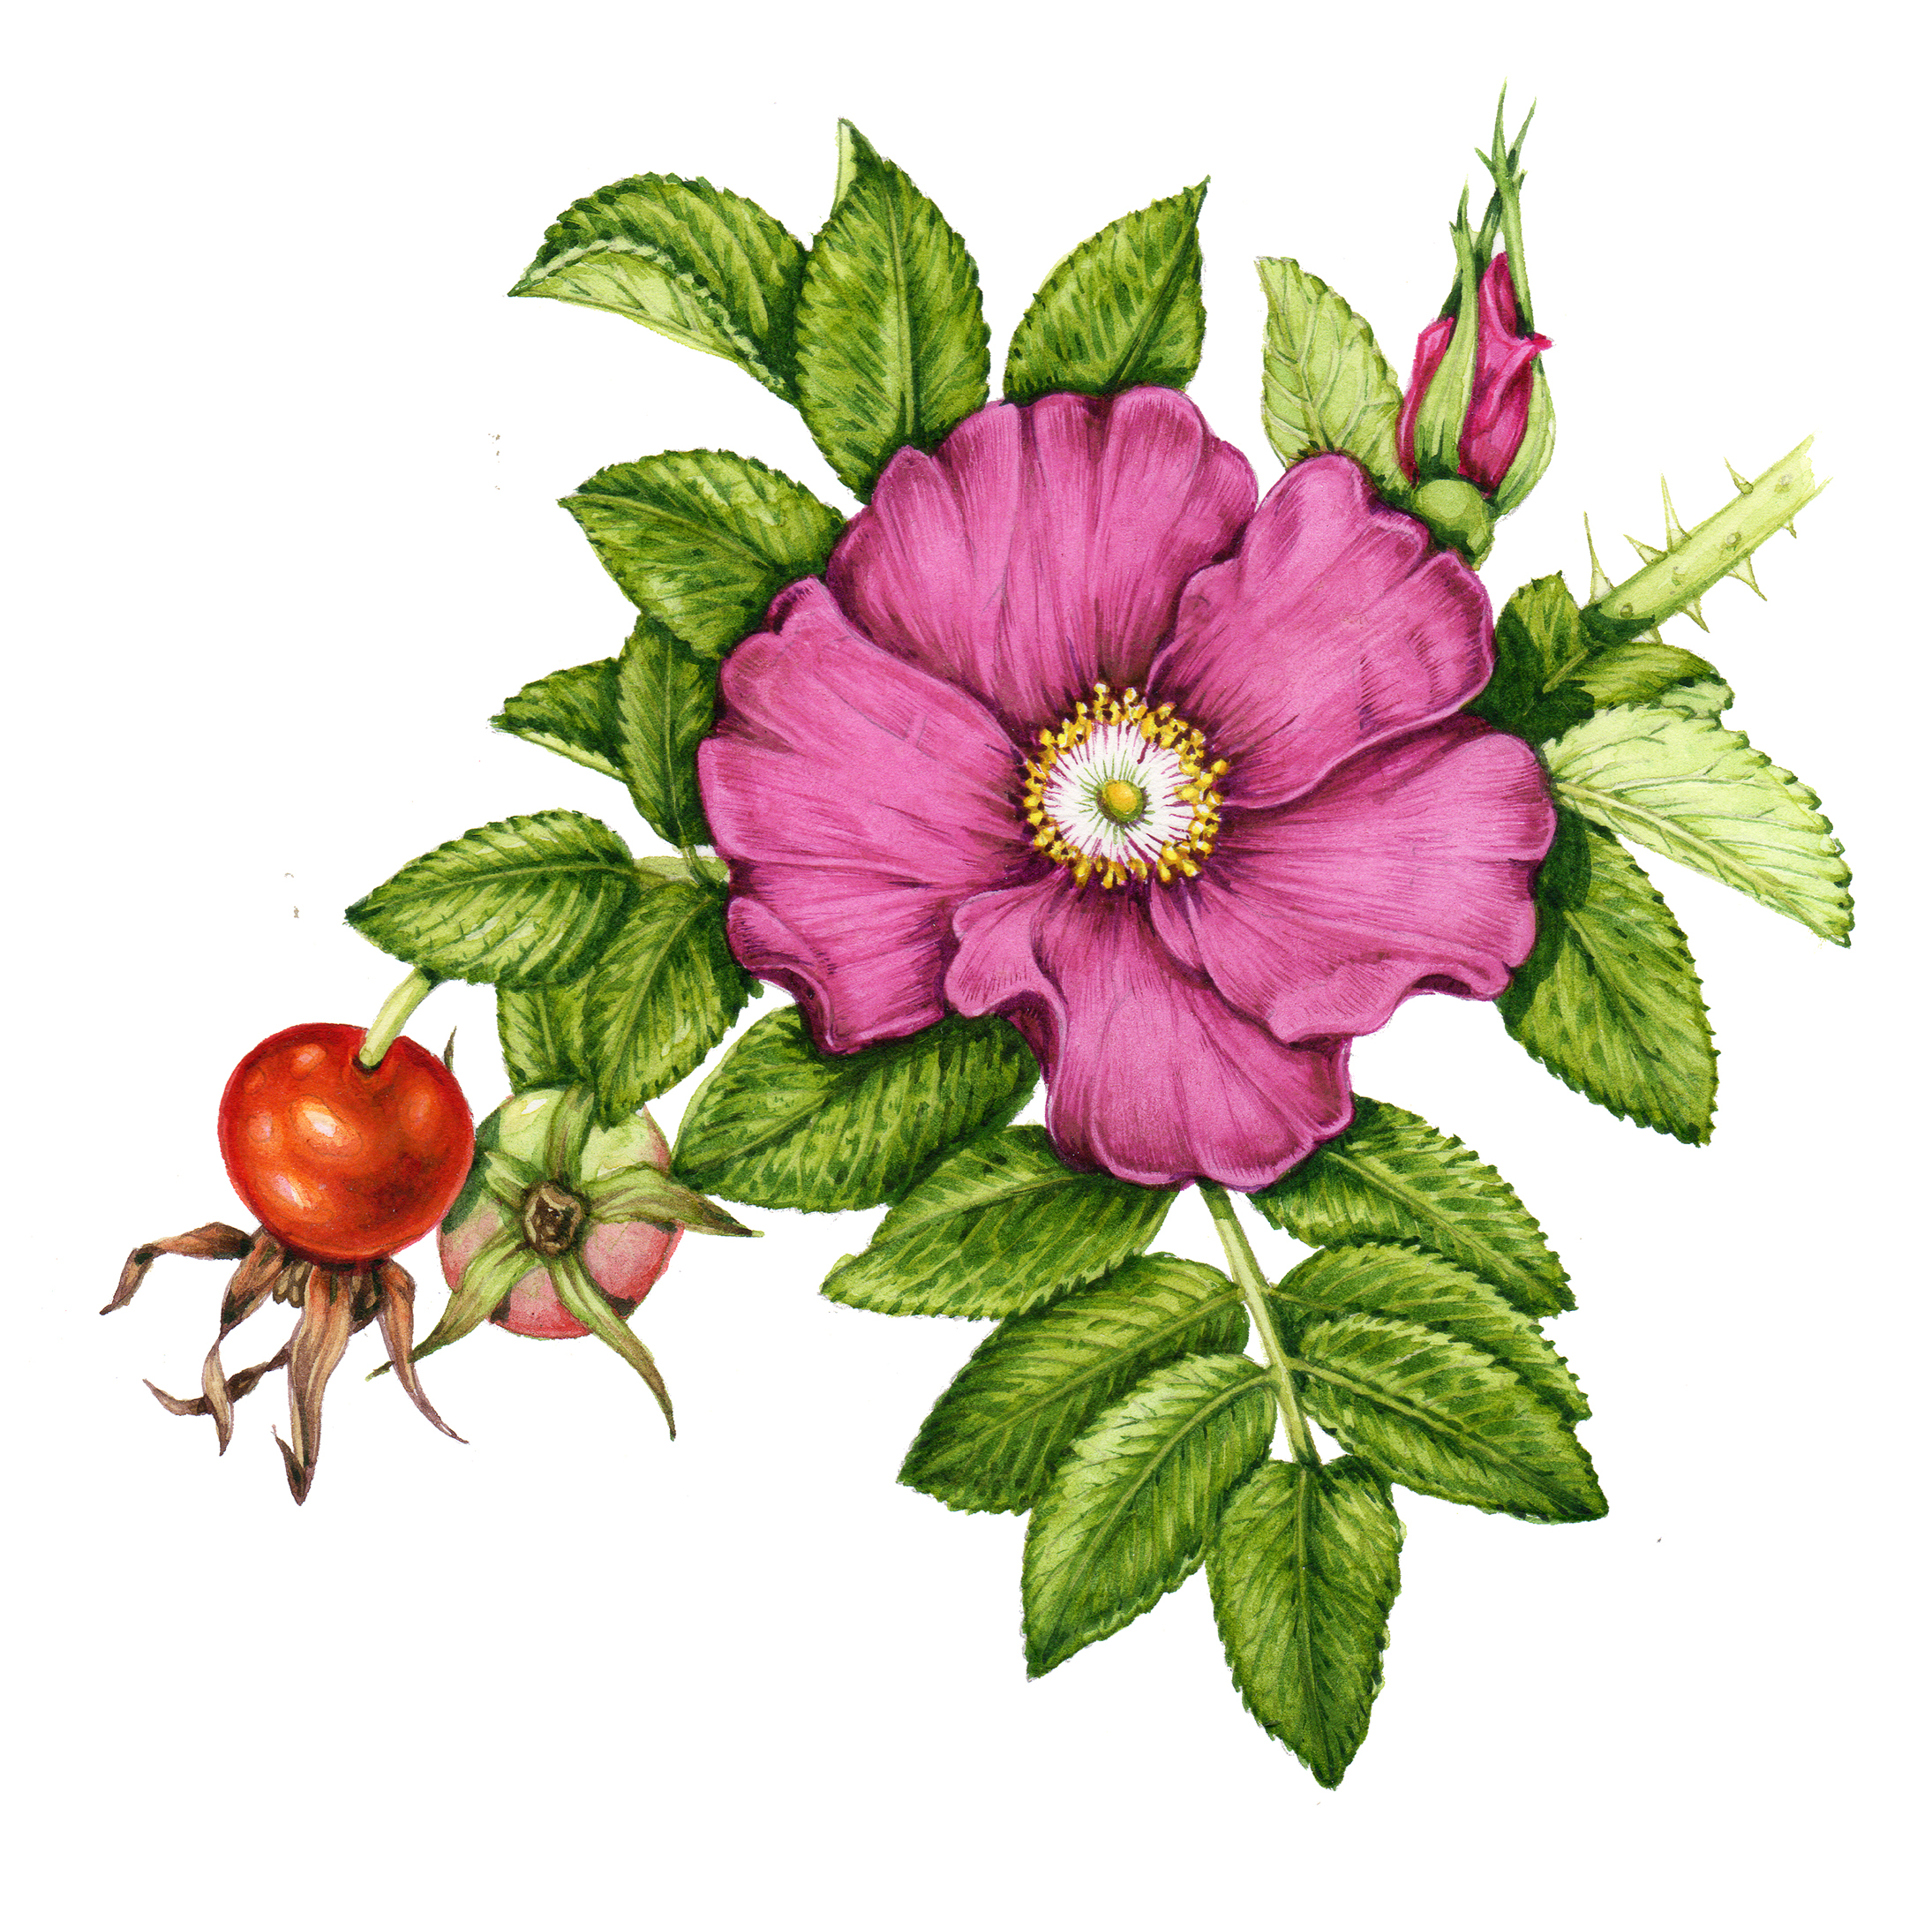 Roses For Sale Near Me >> Botanical Illustration: Rosehips - Lizzie Harper